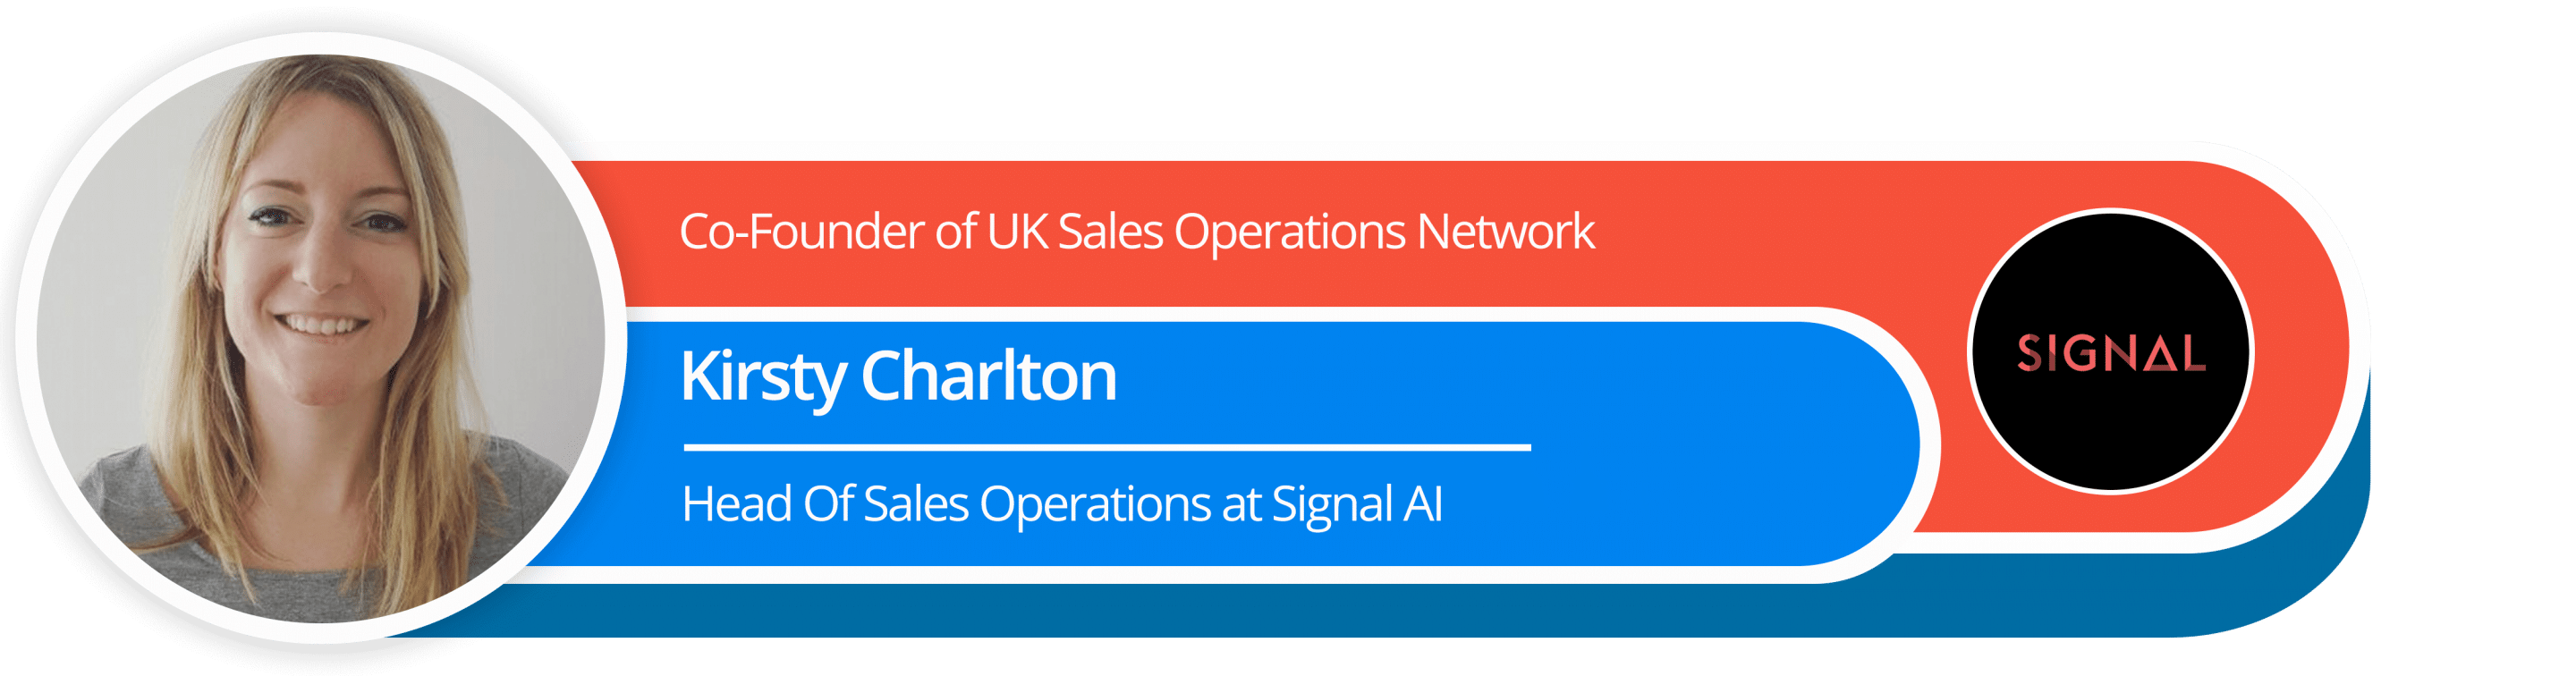 Co-Founder of UK Sales Operations Network Kirsty Charlton Head of Sales Operations at SIGNAL AI